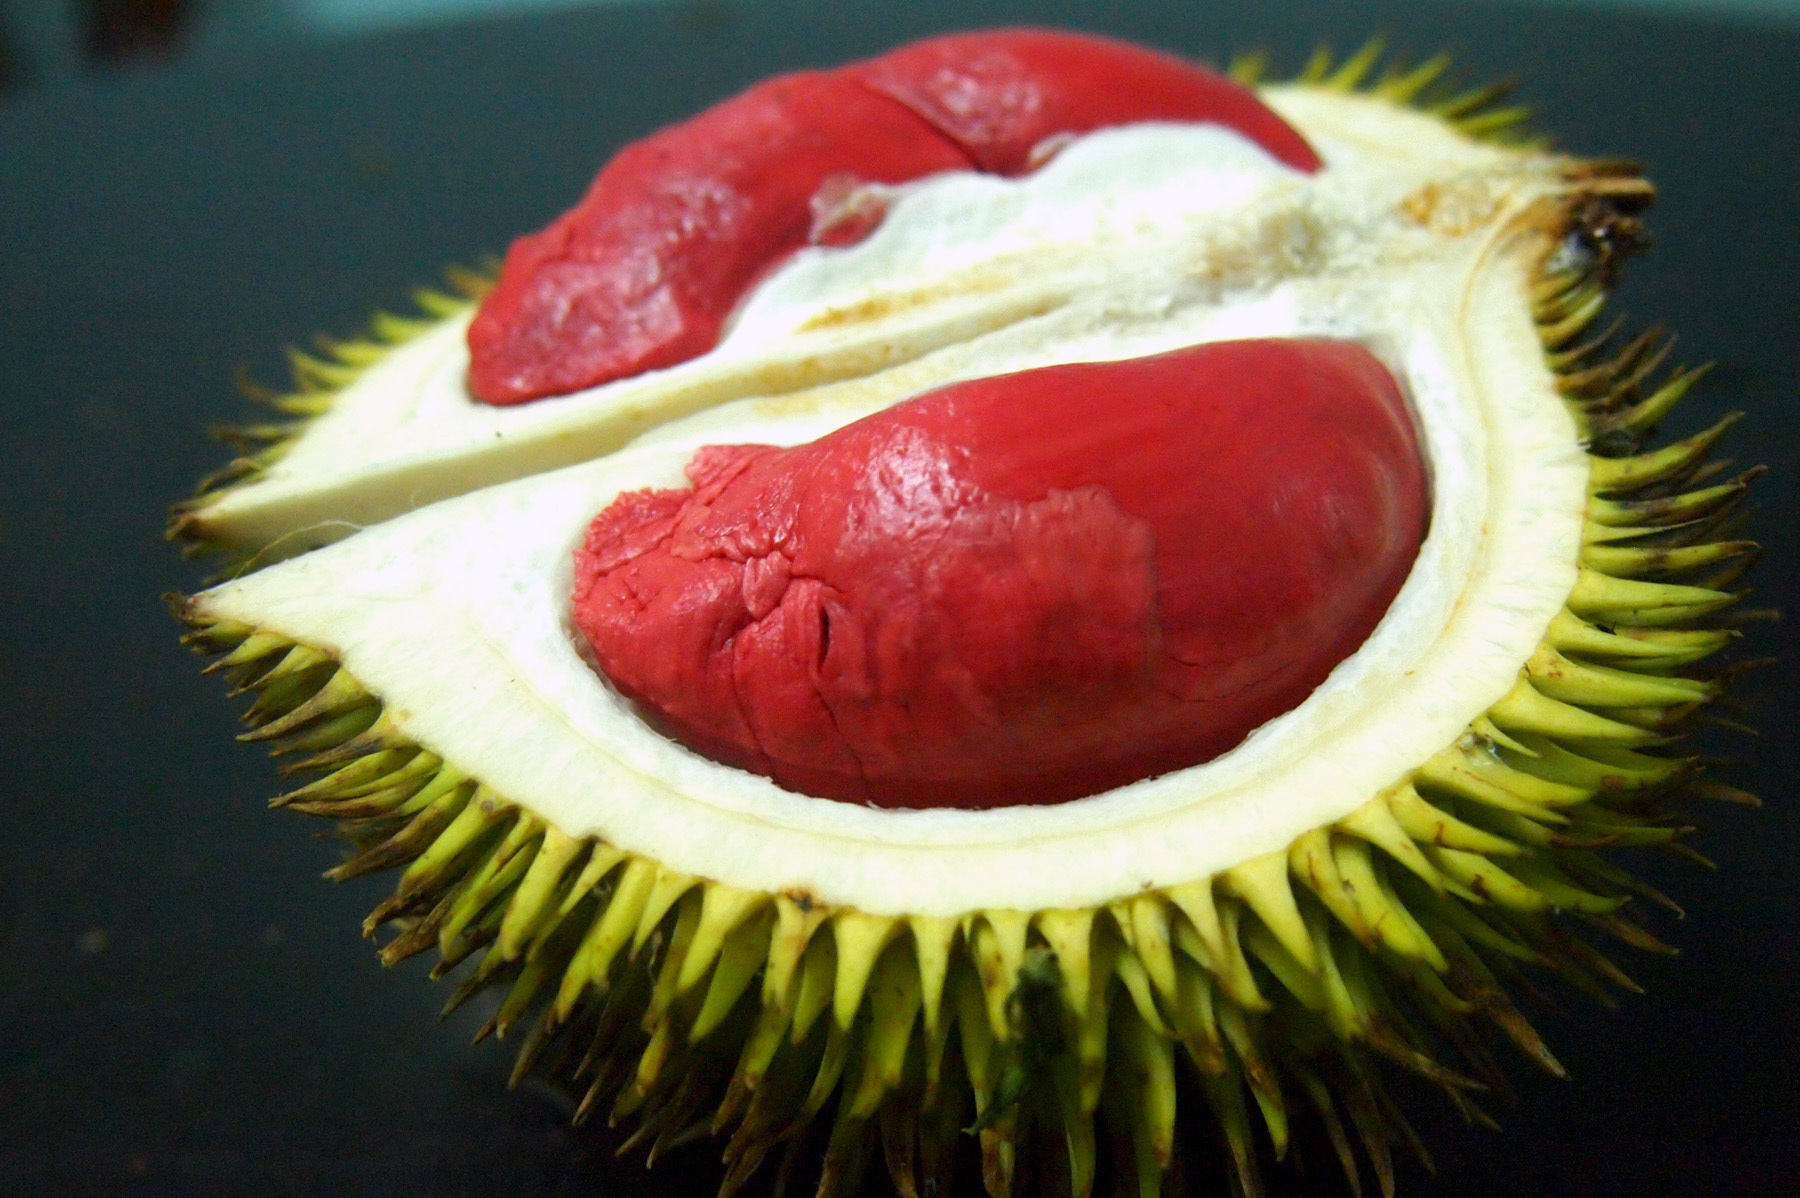 The inside of the Graveolens, a variety of durian that grows in the southernmost parts of Thailand, is sticky and cheese-like. Photo: Courtesy of Lindsay Gasik